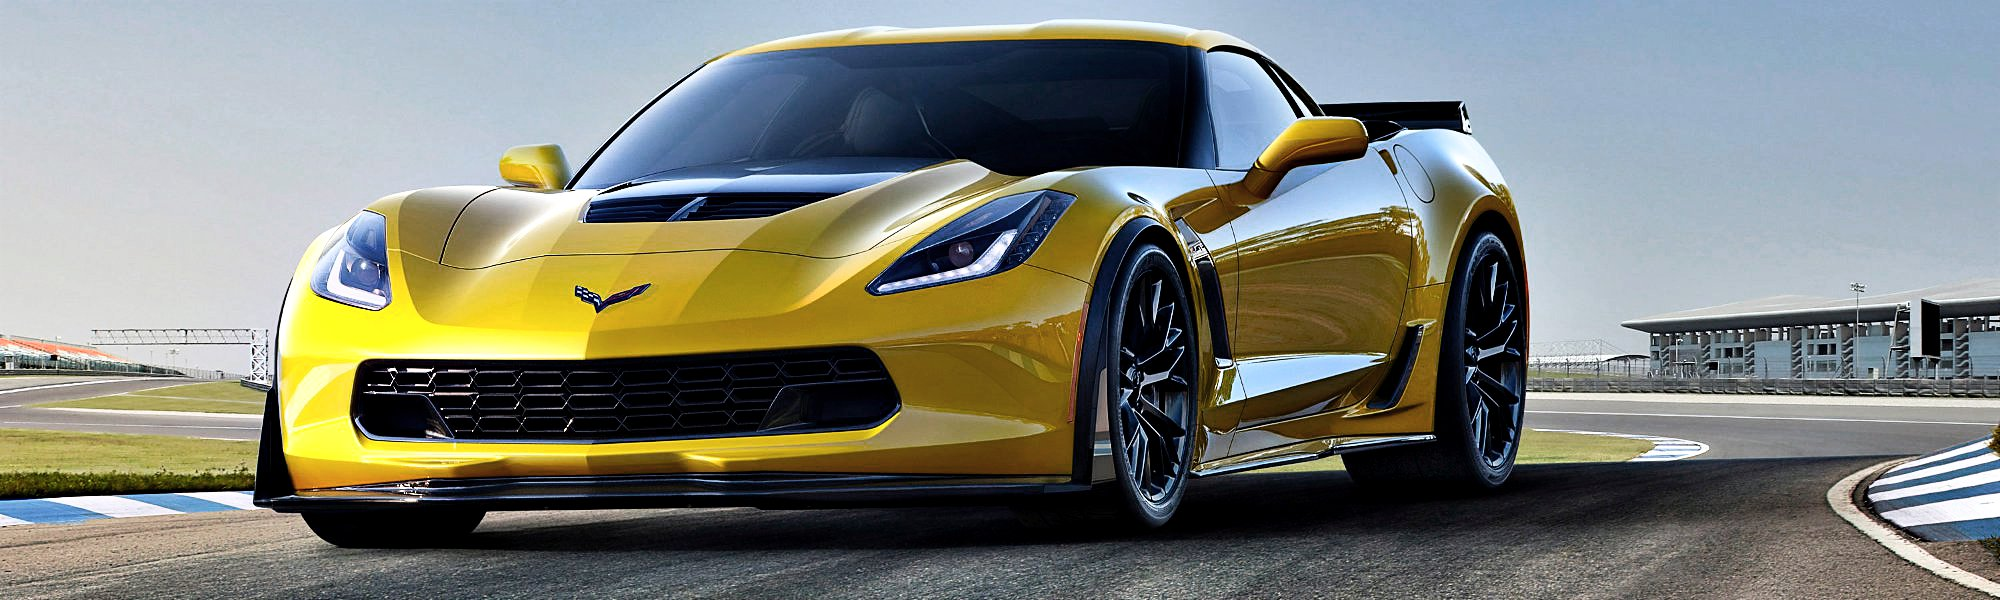 The 2015 Corvette Z06 delivers unprecedented levels of aerodynamic downforce, at least 625 horsepower from an all-new supercharged engine, and an all-new, high-performance eight-speed automatic transmission, and the suite of advanced driver technologies introduced on the Corvette Stingray.